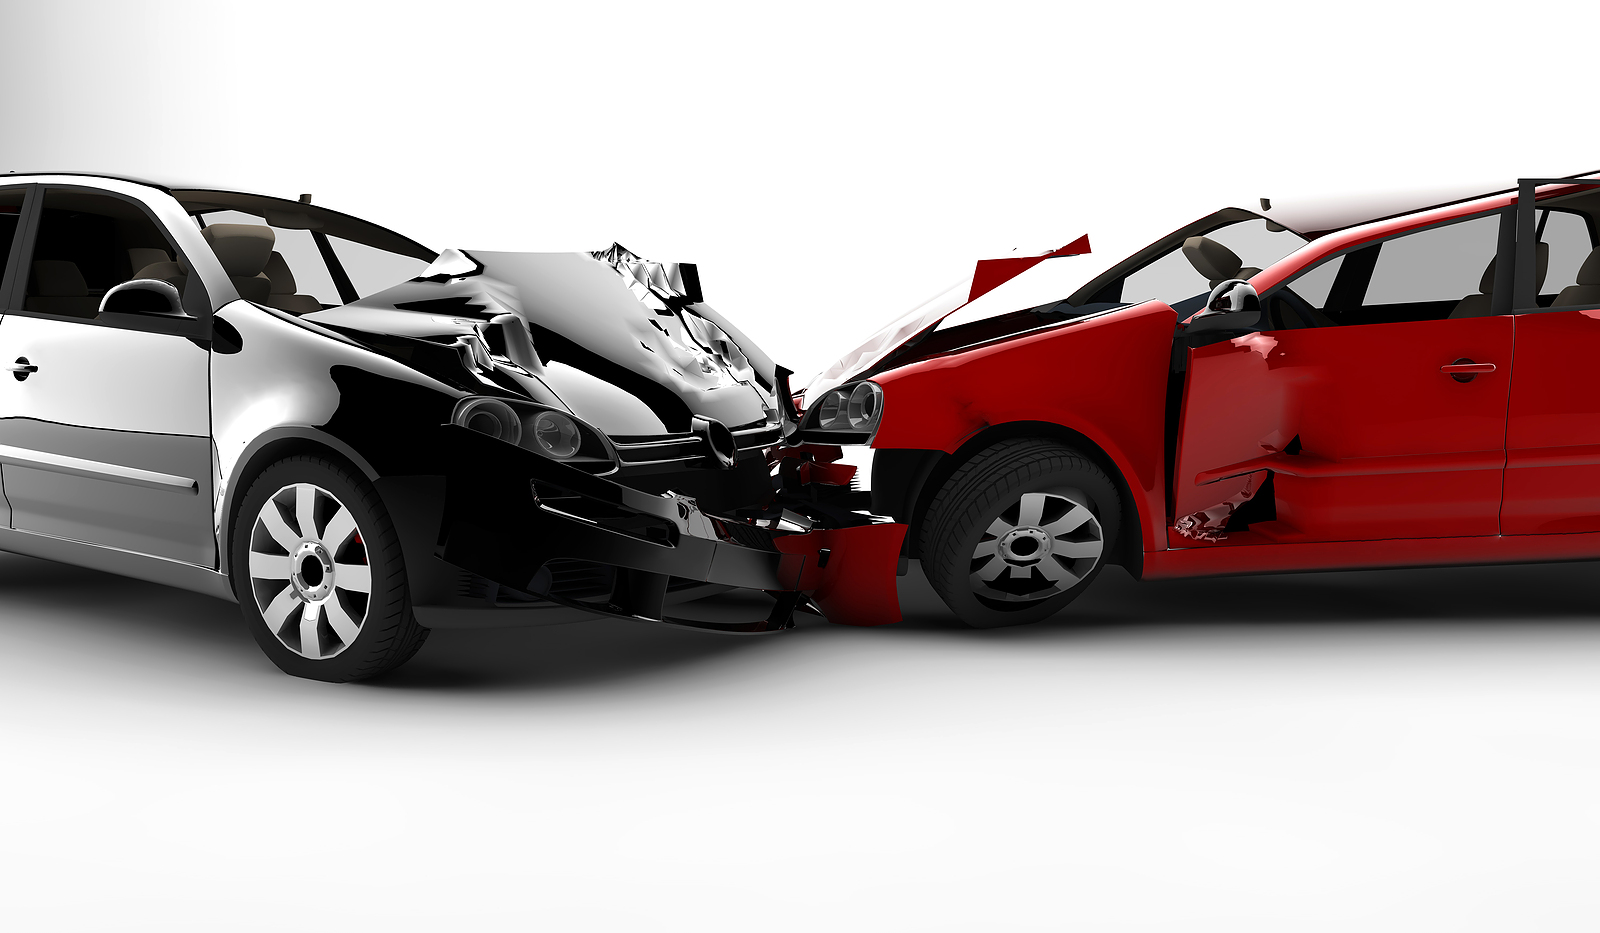 Steps to Follow If You Have a Car Accident